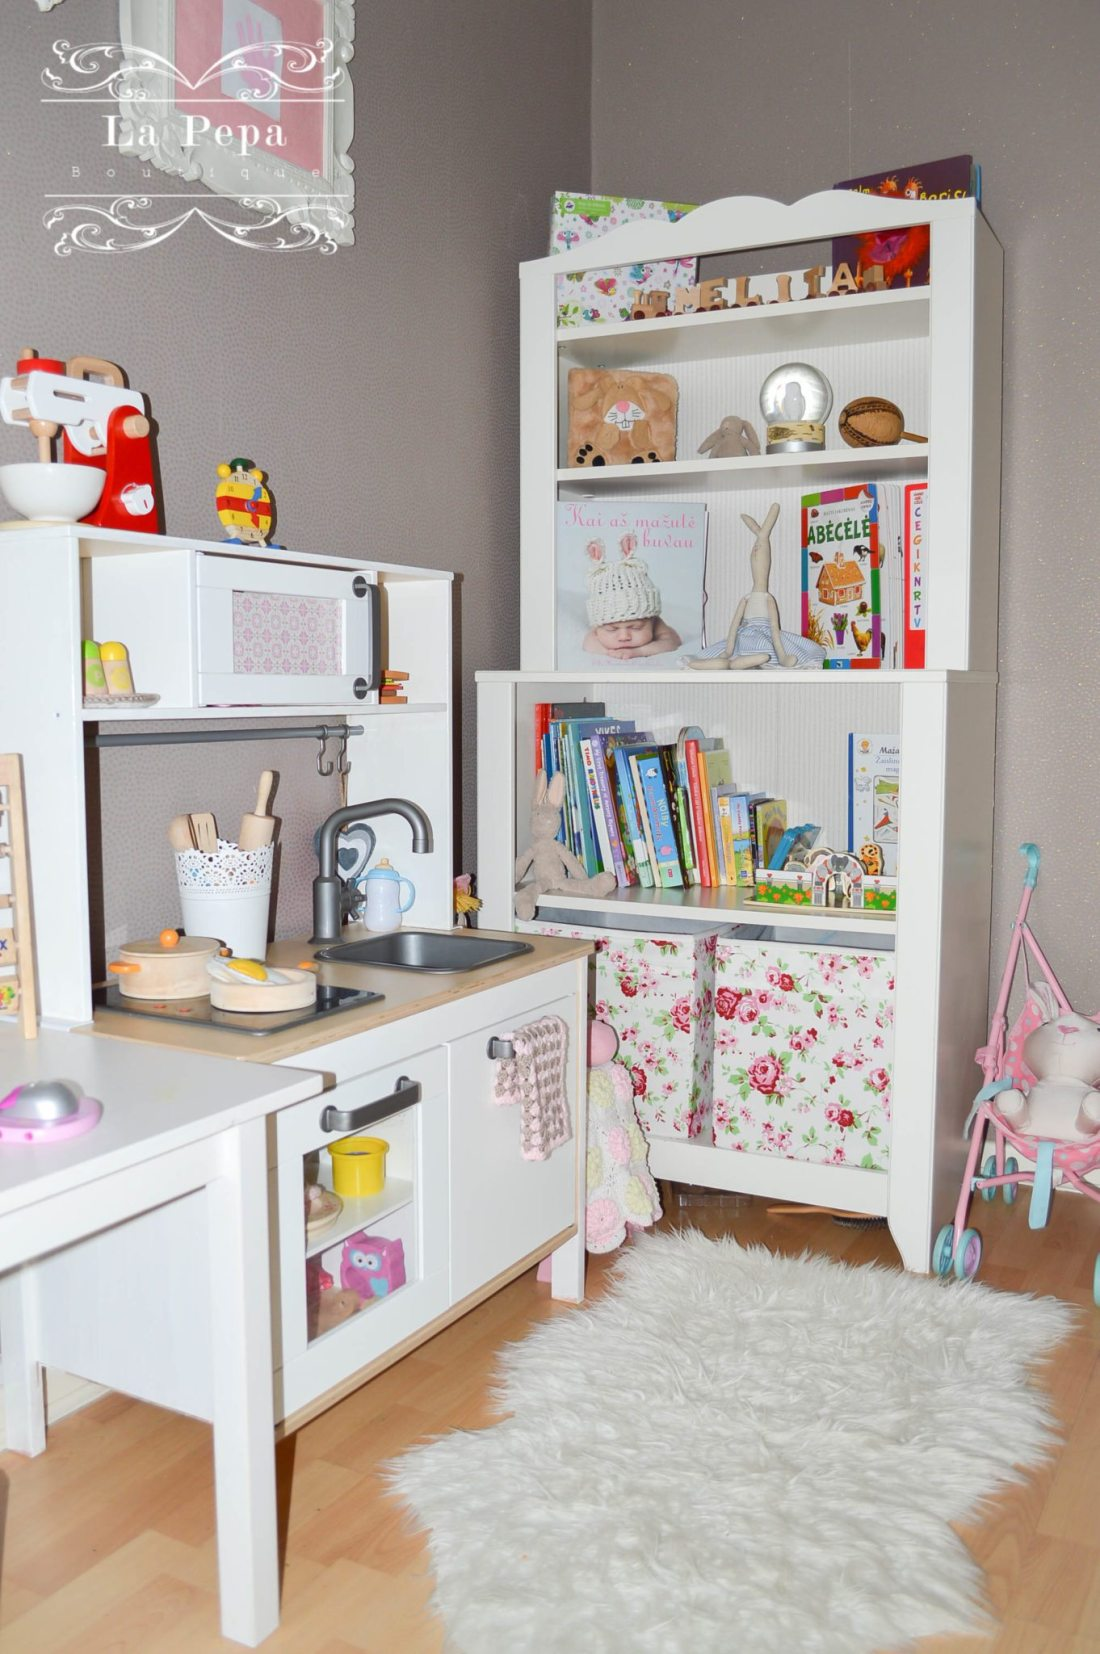 Toddler's play area 1